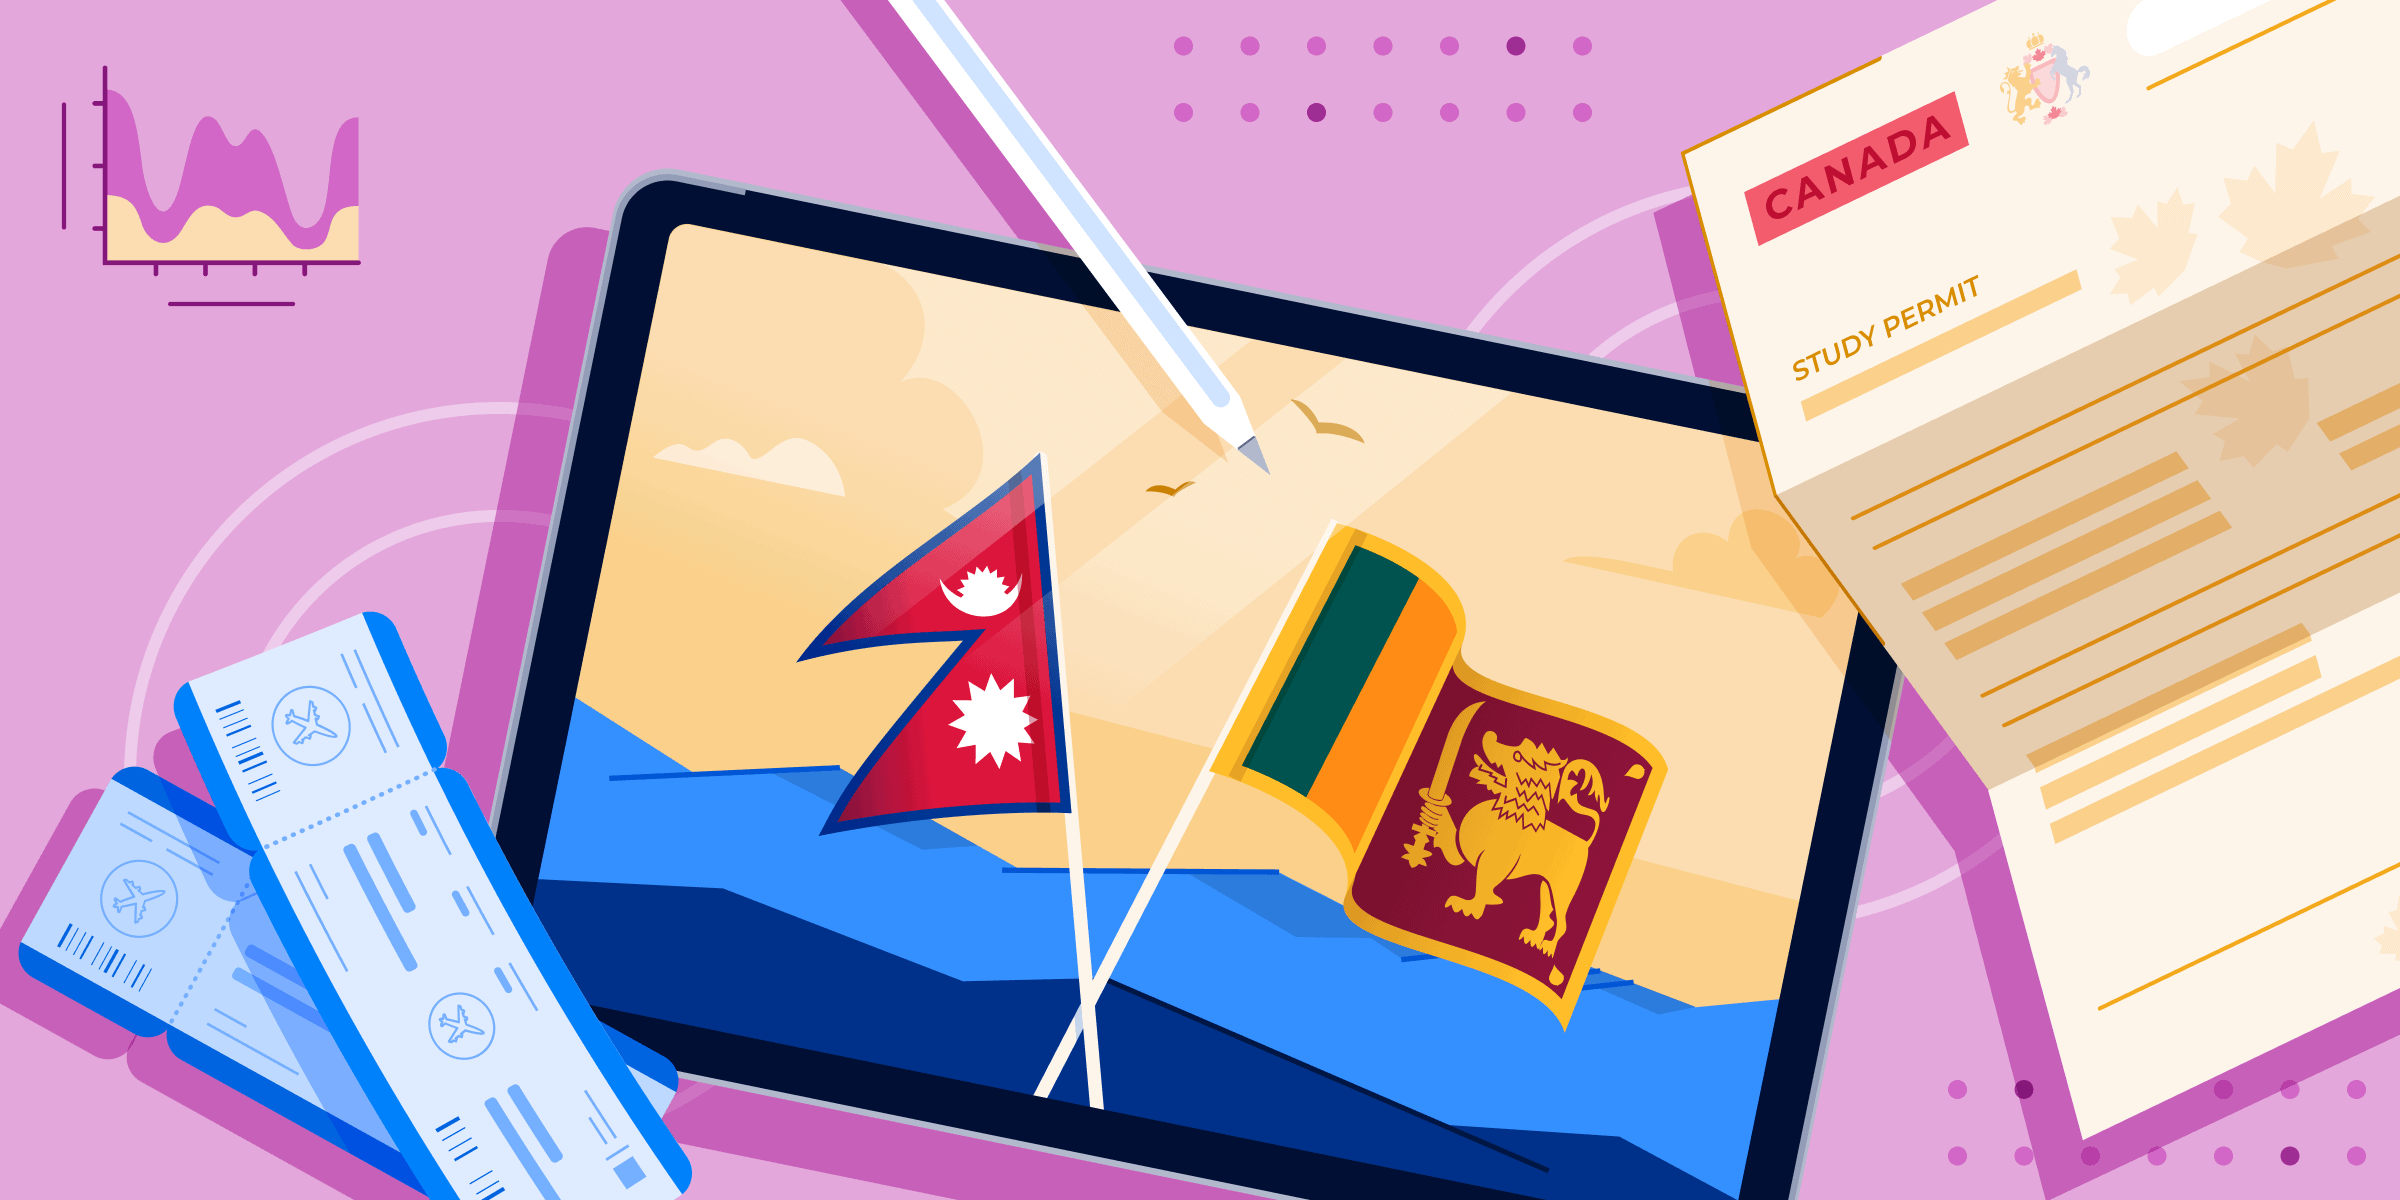 AI Sri Lanka & Nepal banner featuring flags of both countries, immigration documents, and a tablet